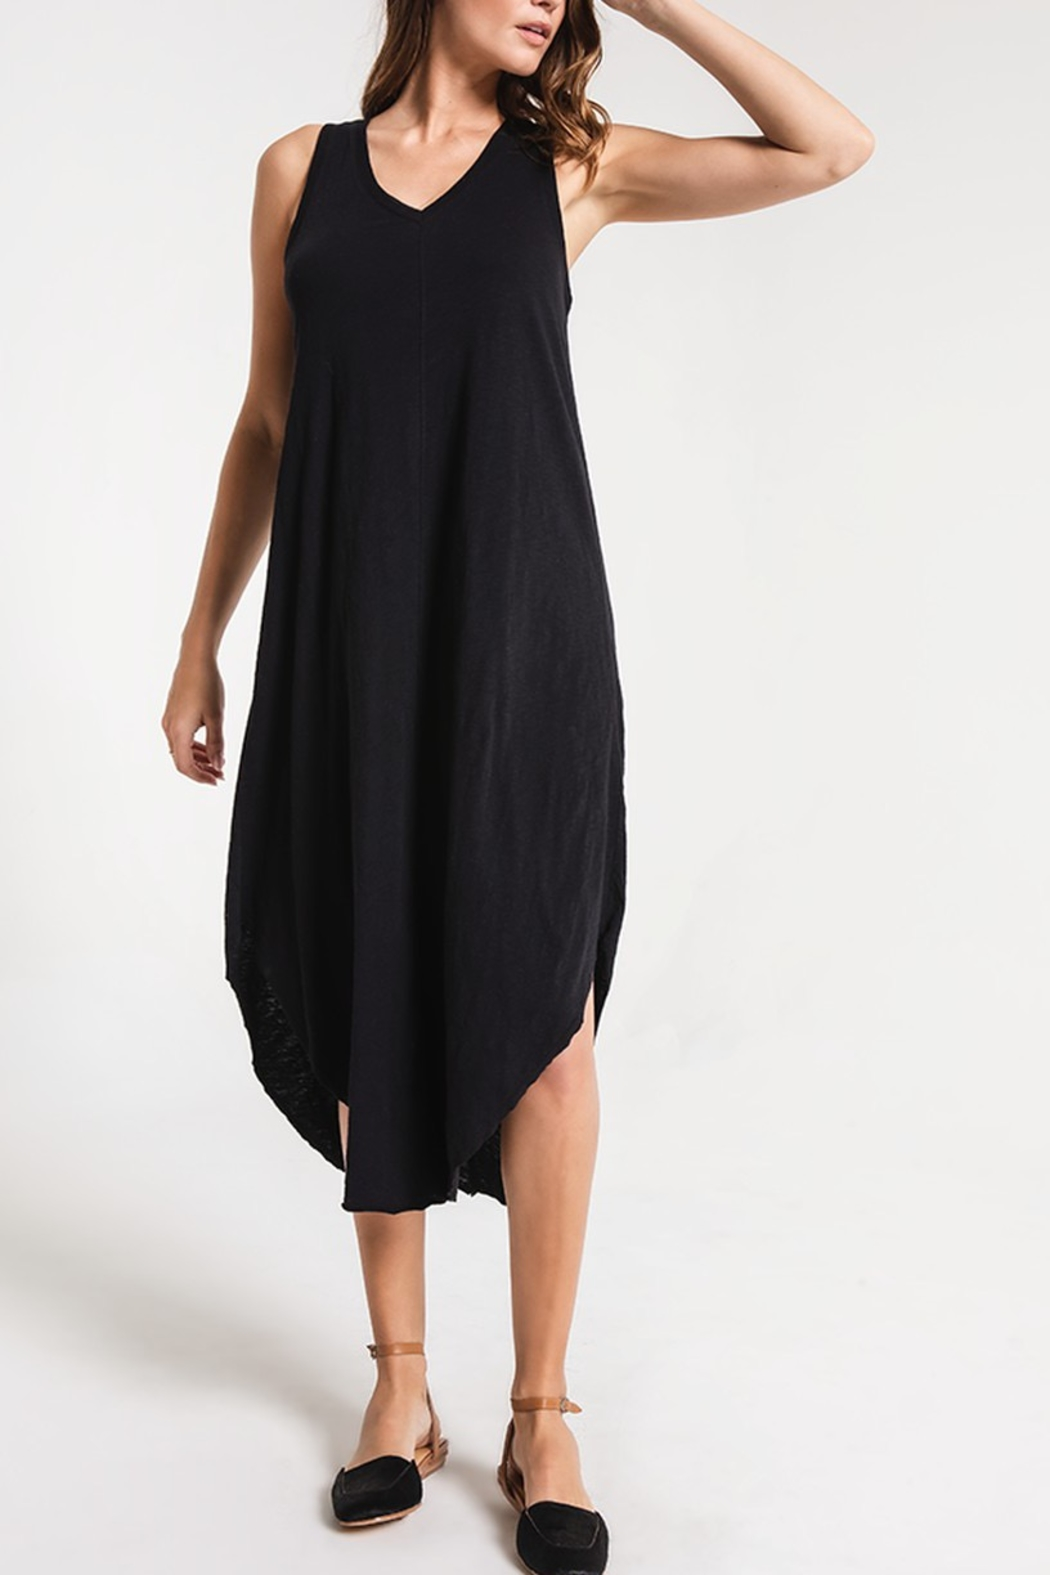 z supply Reverie Midi Dress - Front Cropped Image